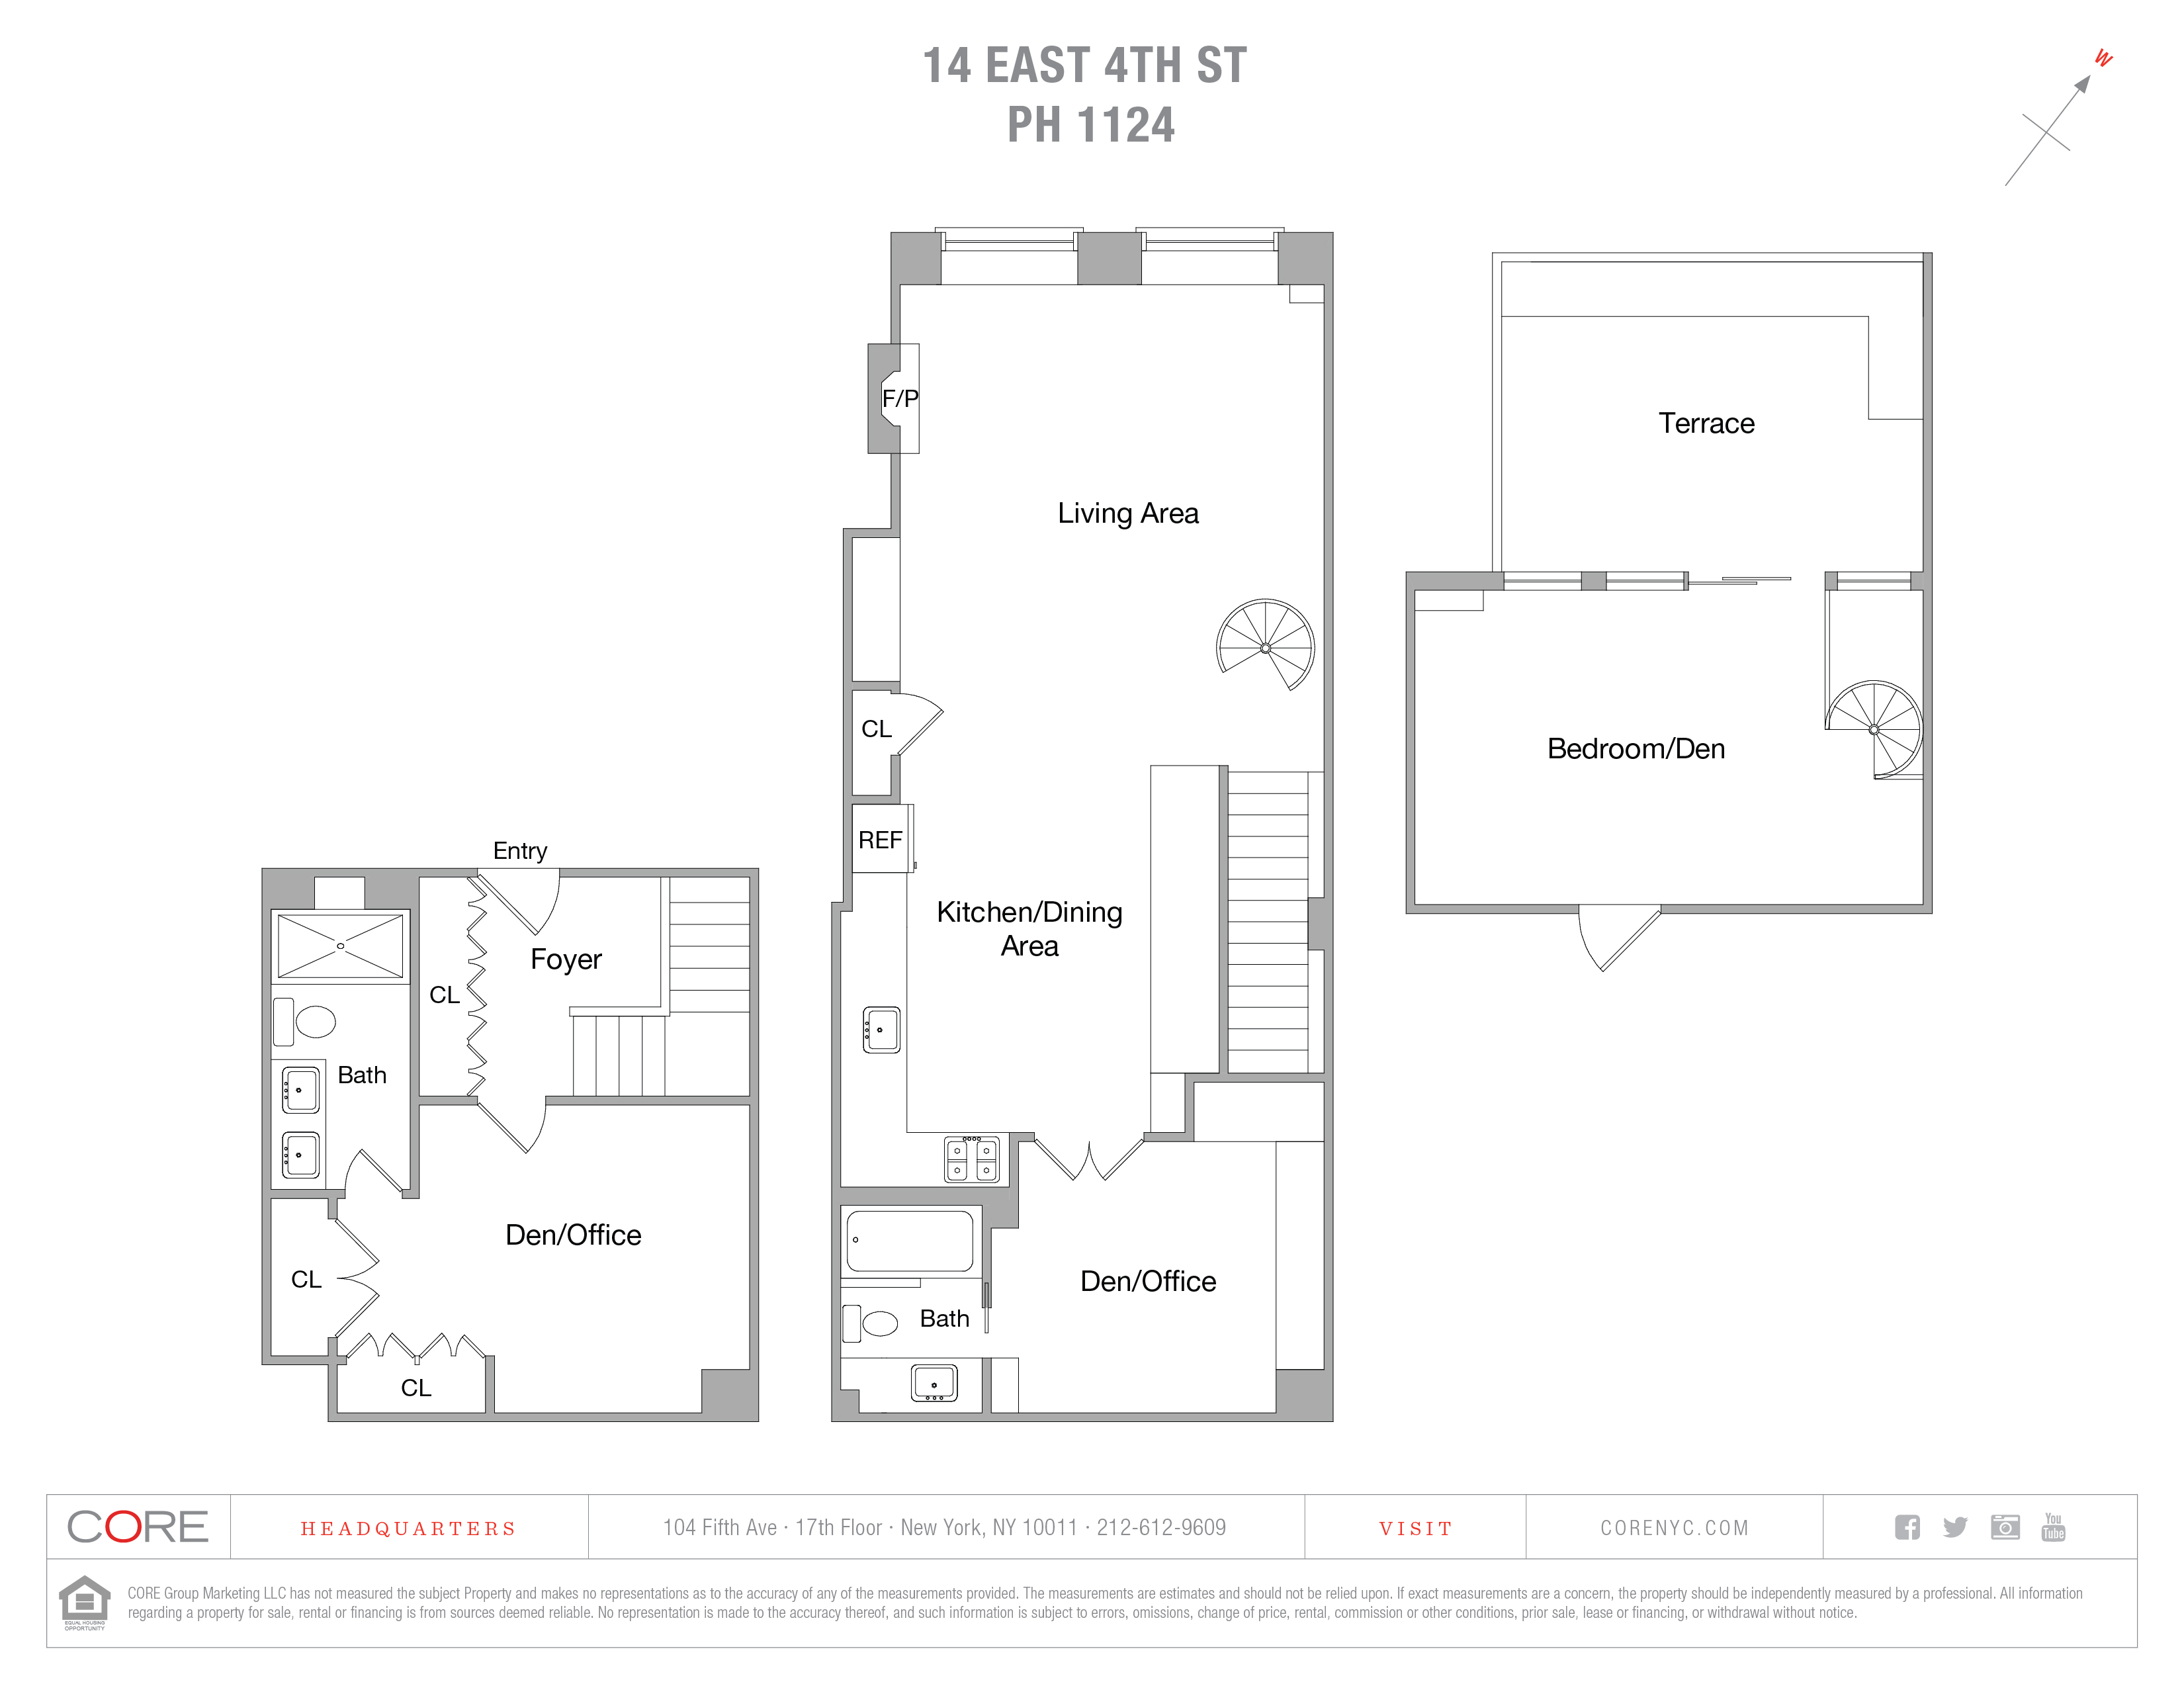 14 East 4th St. Penthouse 1124, New York, NY 10012